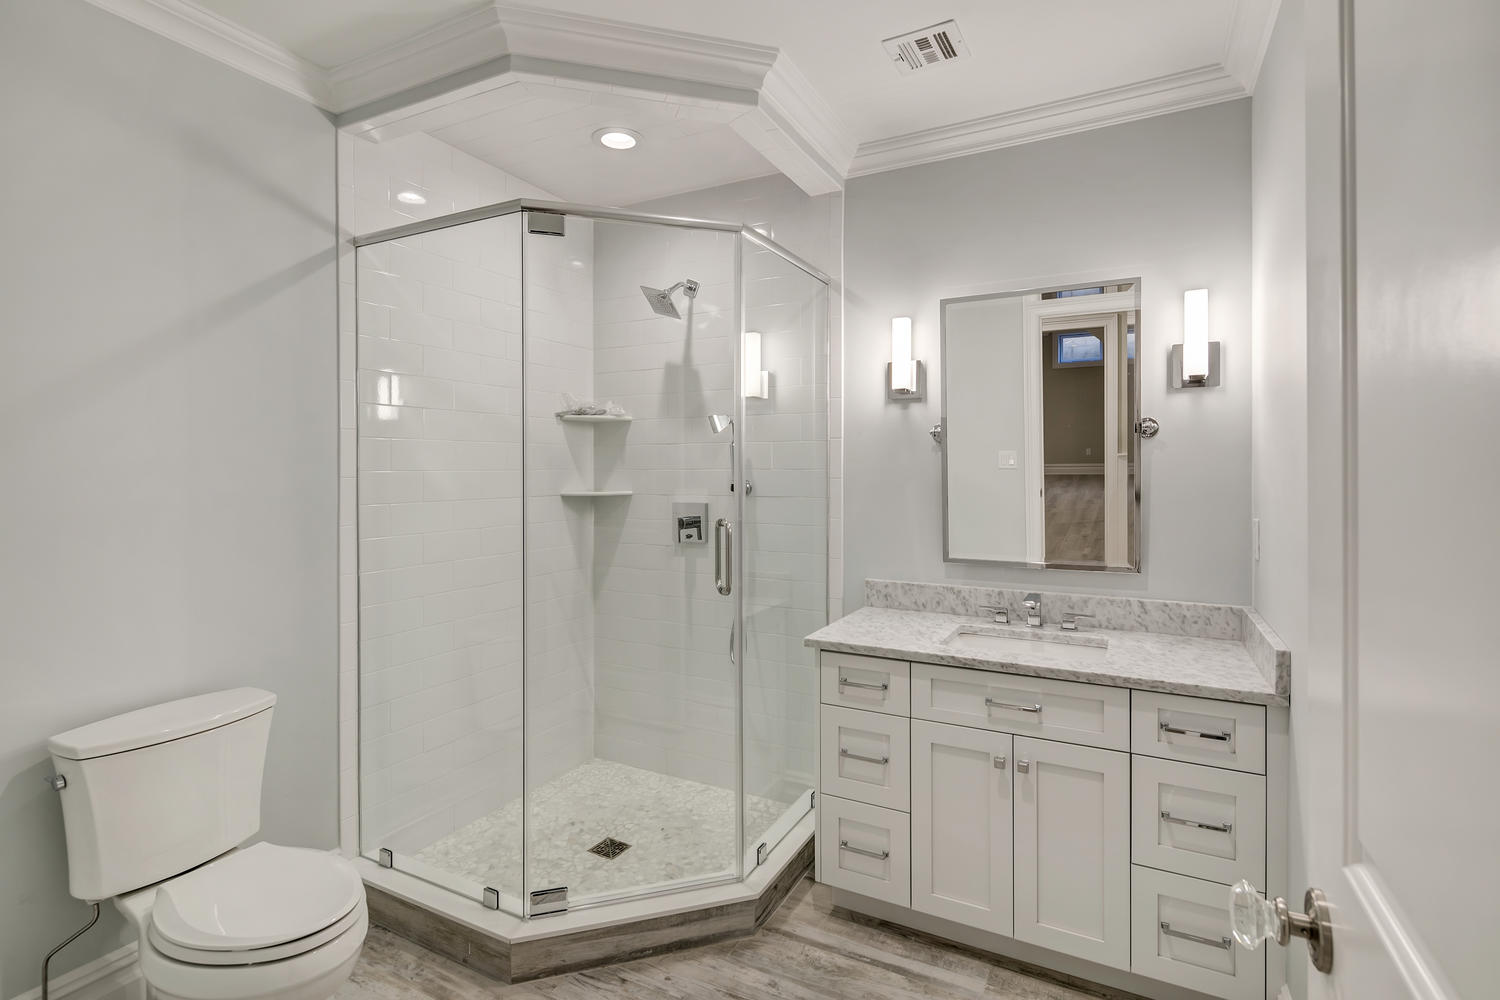 Bath vanities monmouth county new jersey by design line kitchens for New style bathroom vanity